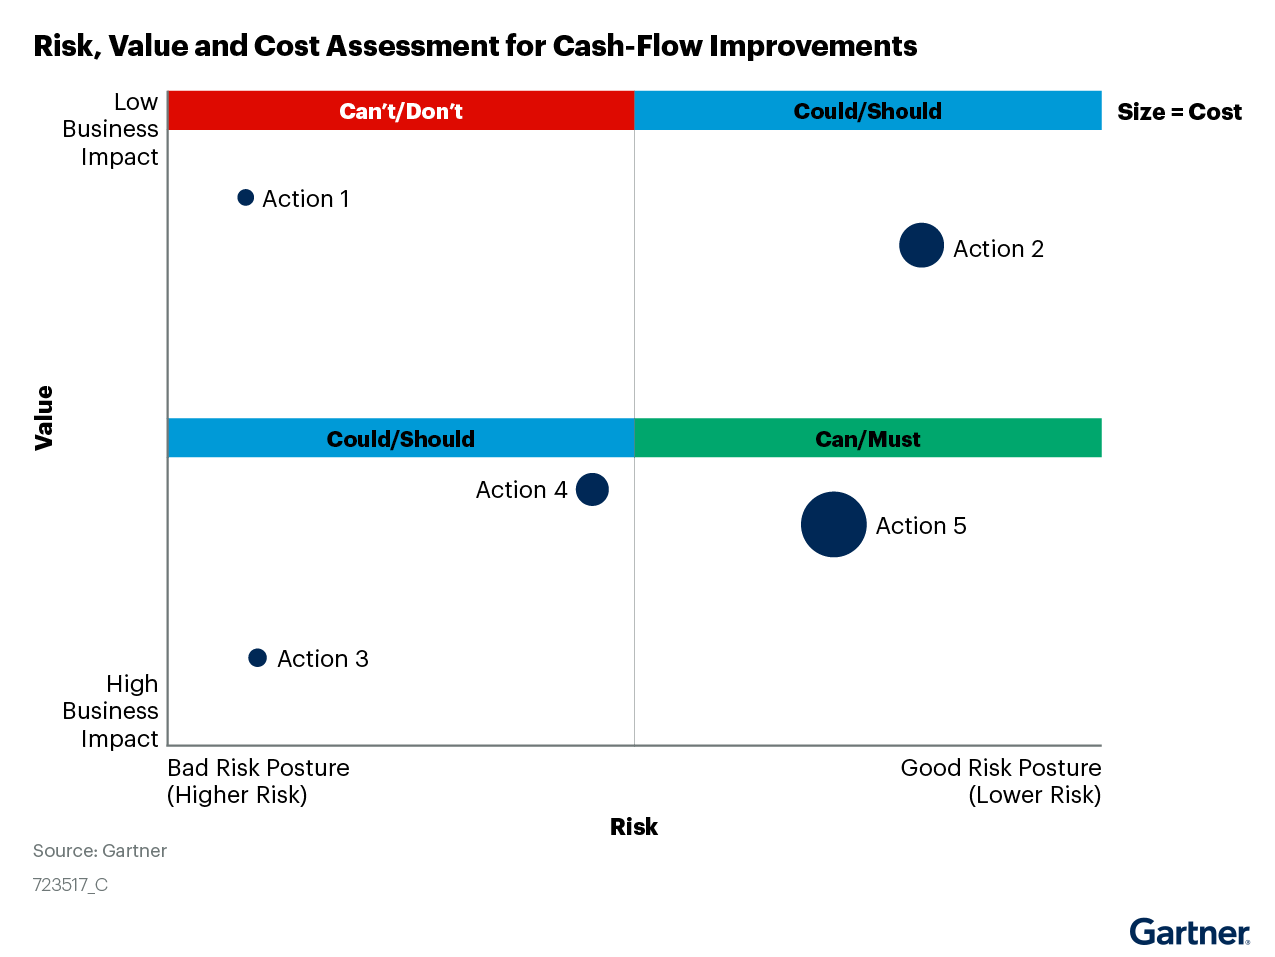 Figure 3. Risk, Value and Cost Assessment for Cash-Flow Improvements